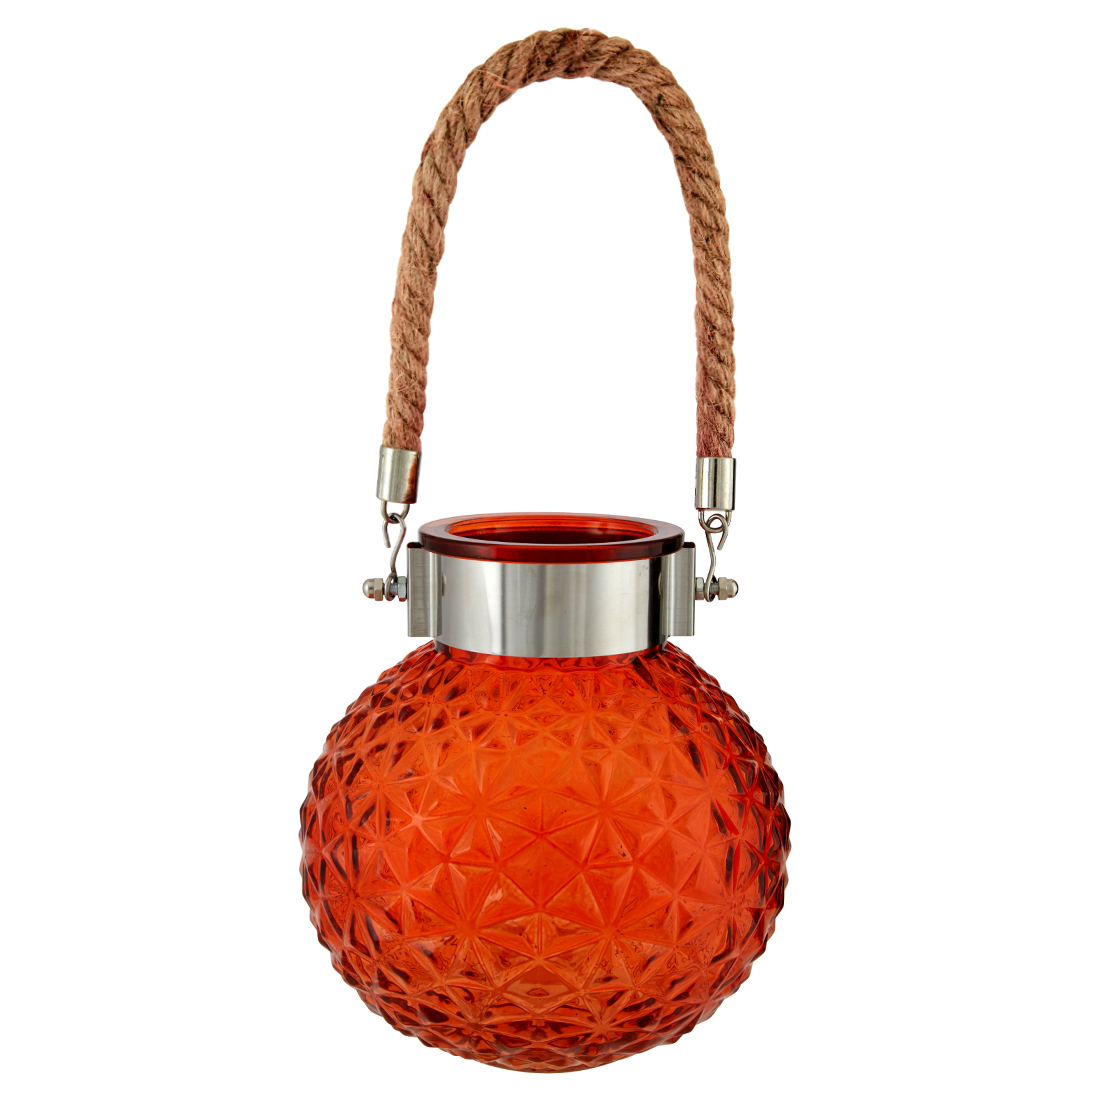 Marvela Colored Glass Vase With Rope Glass Candle Holders in Rust Colour by Living Essence